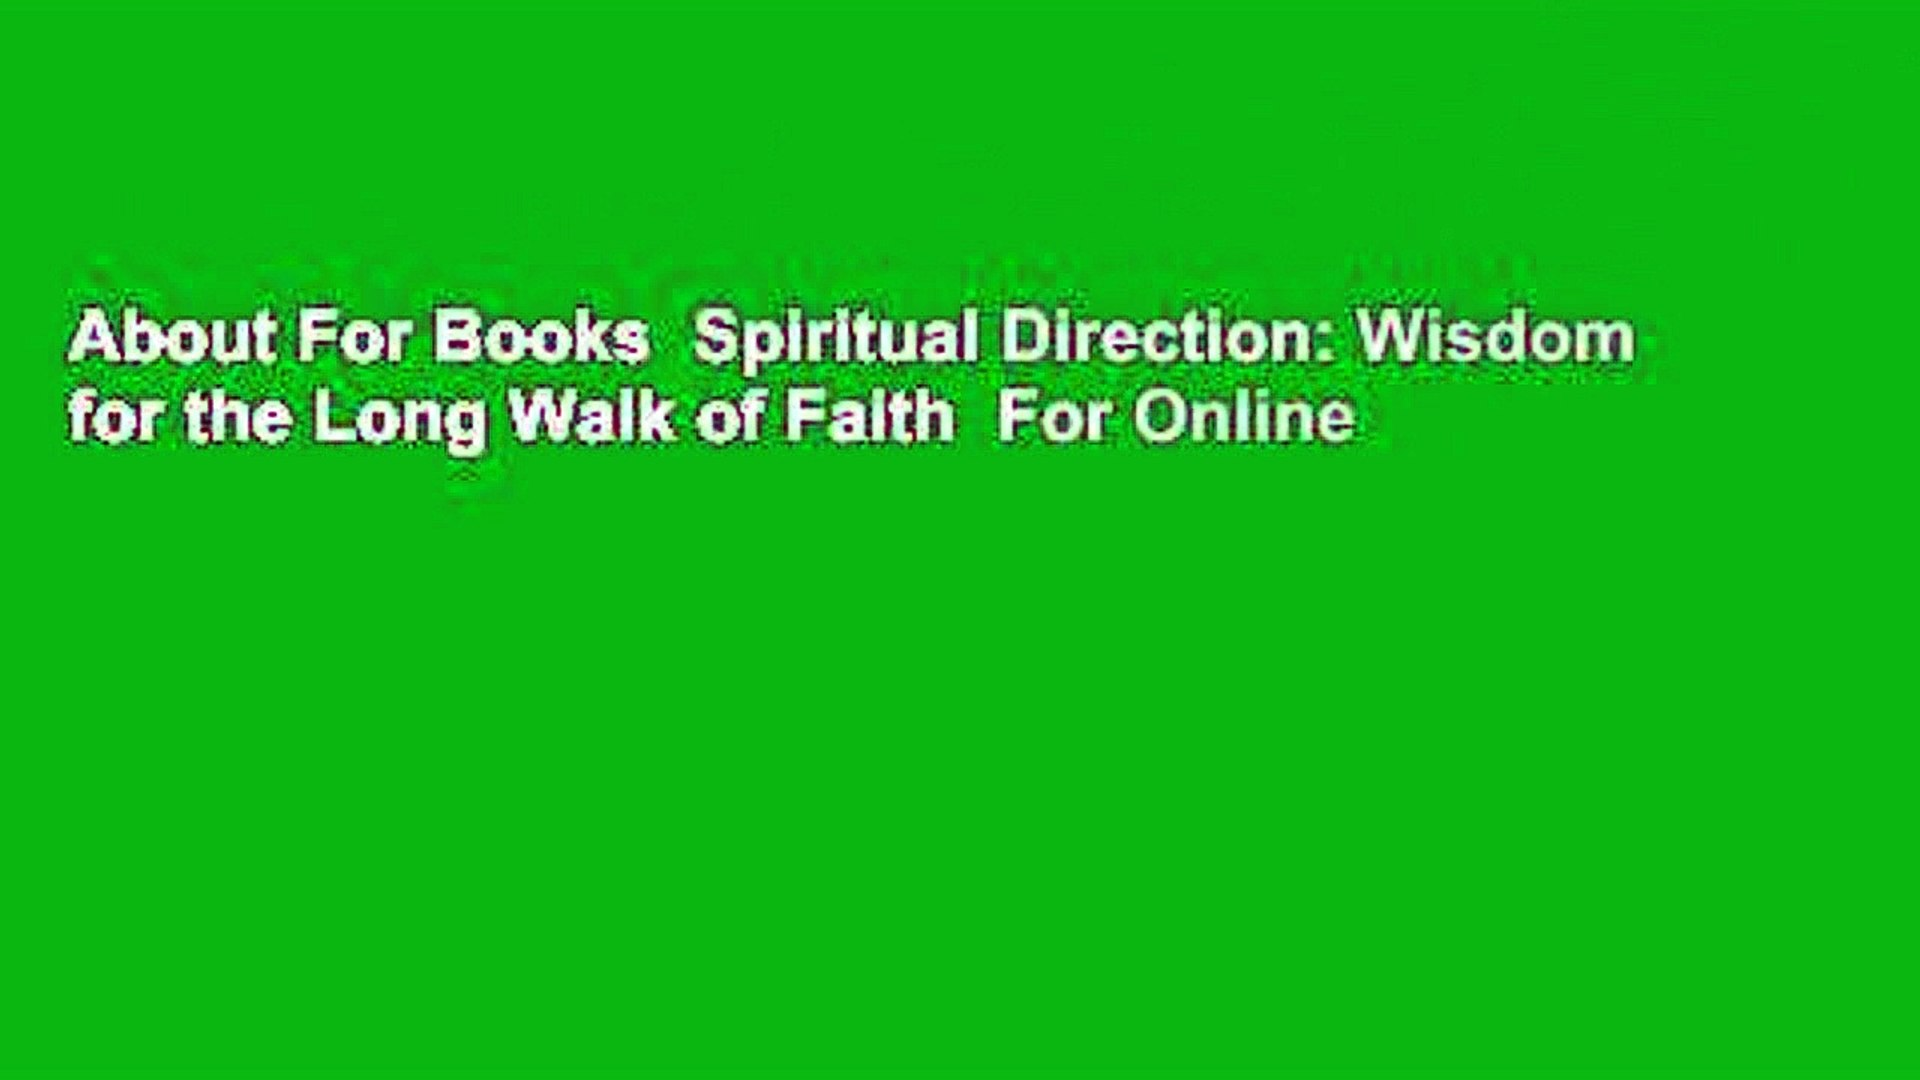 About For Books  Spiritual Direction: Wisdom for the Long Walk of Faith  For Online